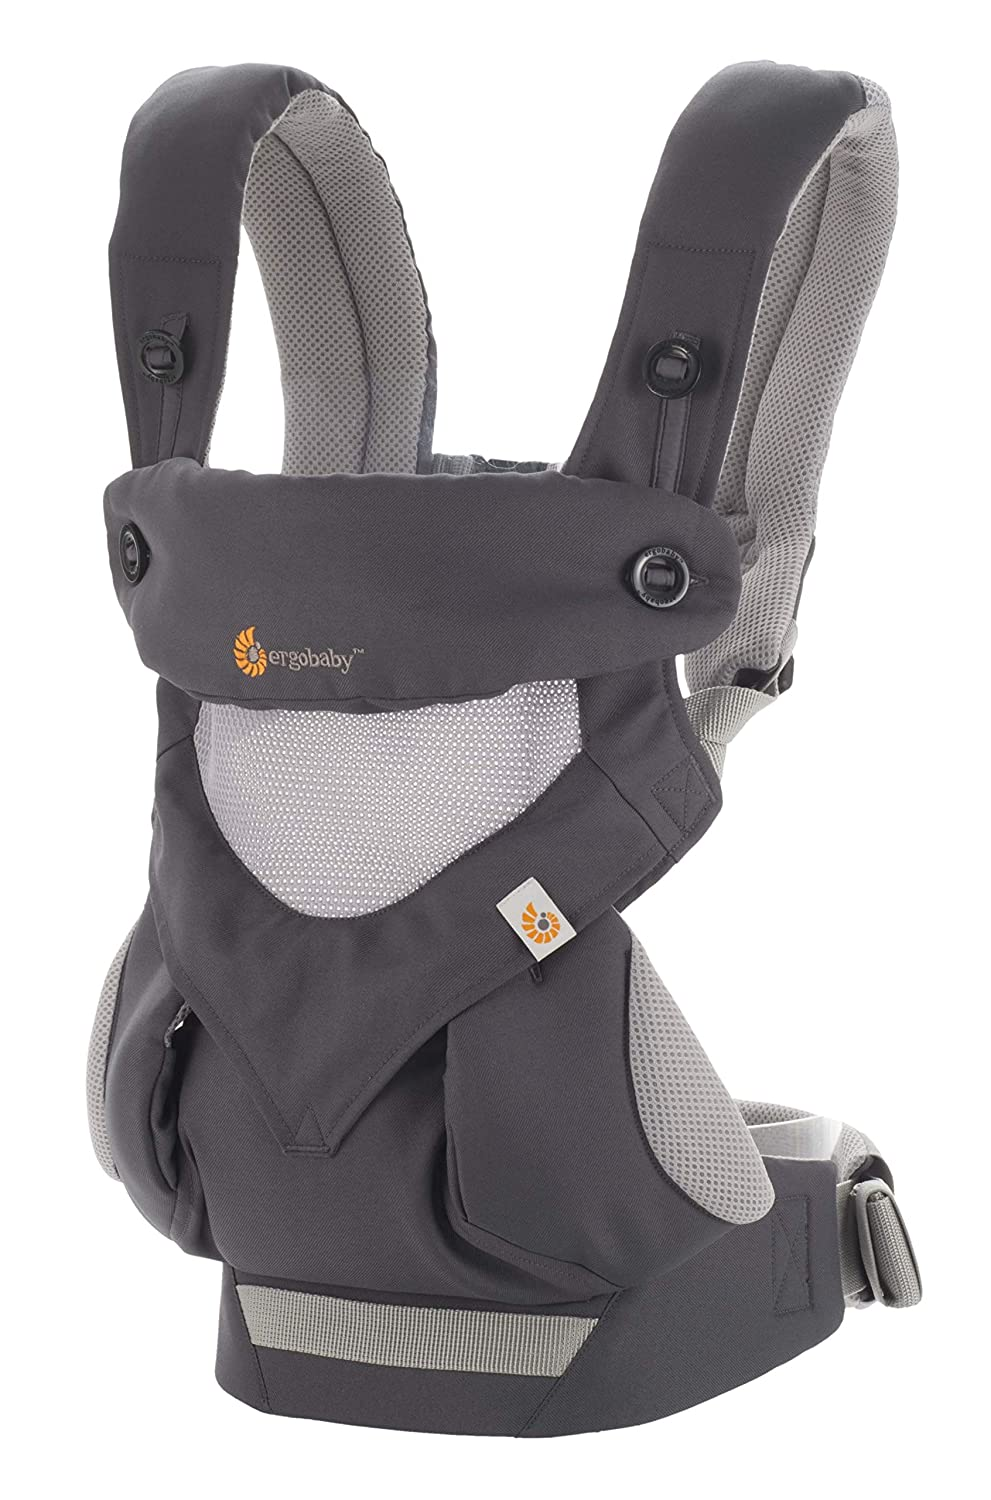 EgoBaby 360 Baby Carrier Black All Carry Positions Lightweight and Breathable